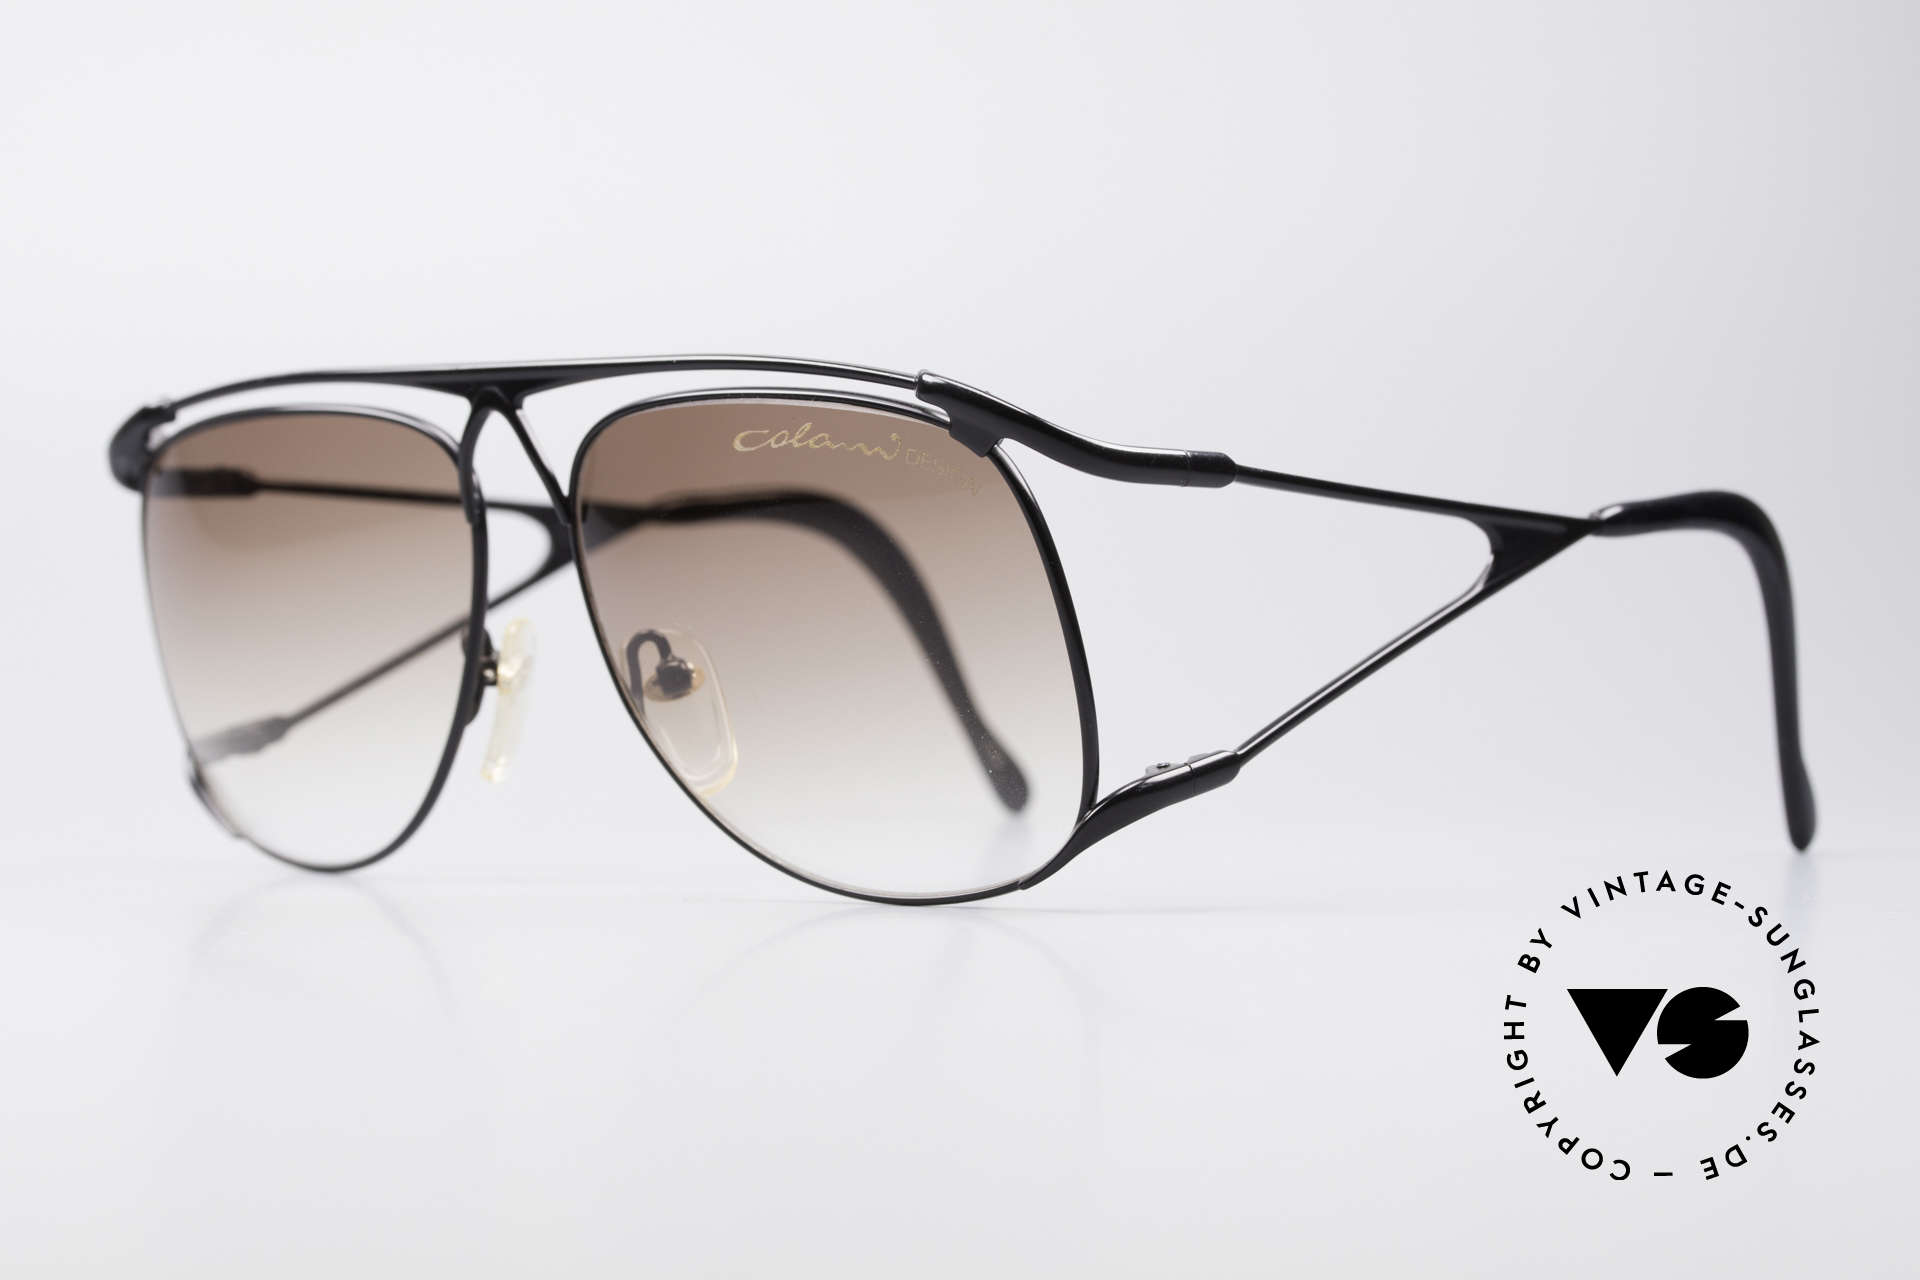 Colani 15-501 Rare 80's Designer Glasses, the most wanted Colani model (collector's item), Made for Men